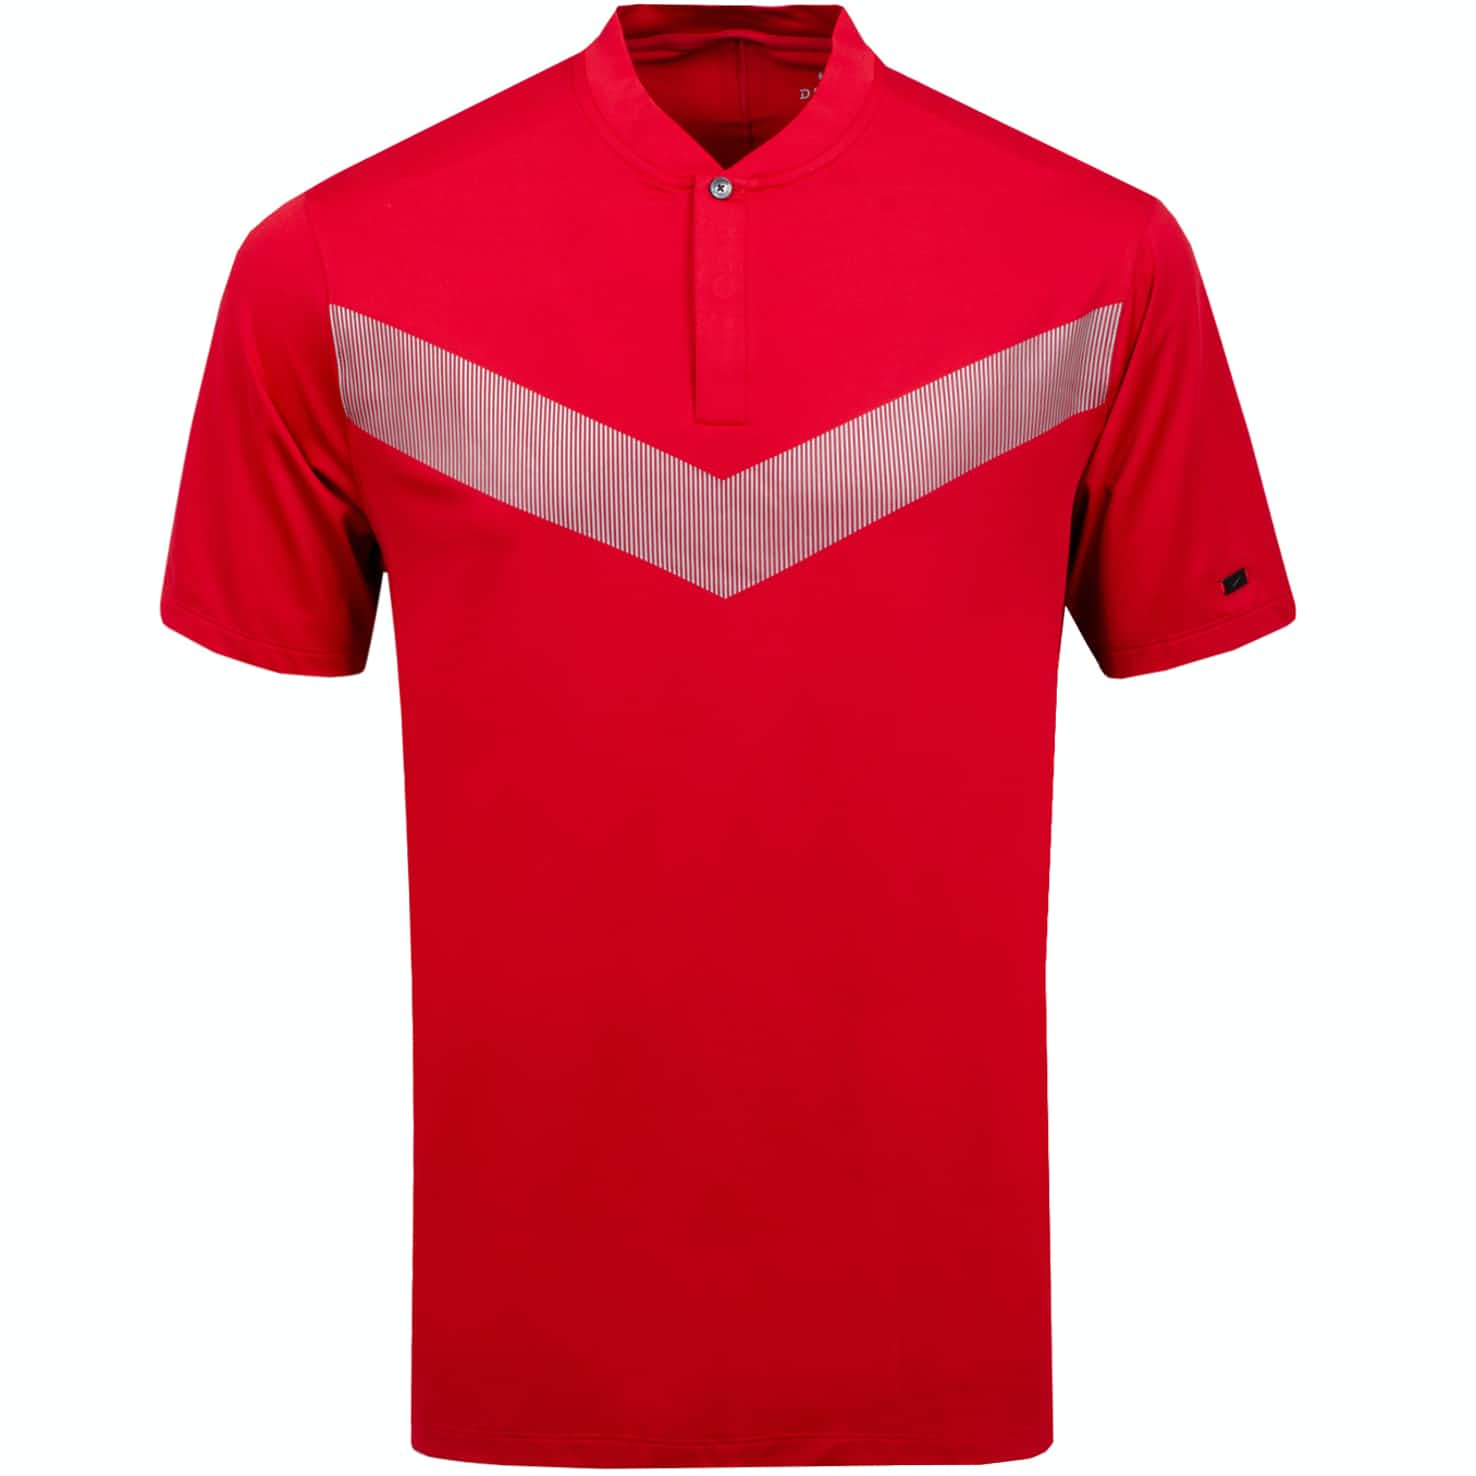 TW Dry Vapor Reflect Blade Polo Gym Red/Black - AW19